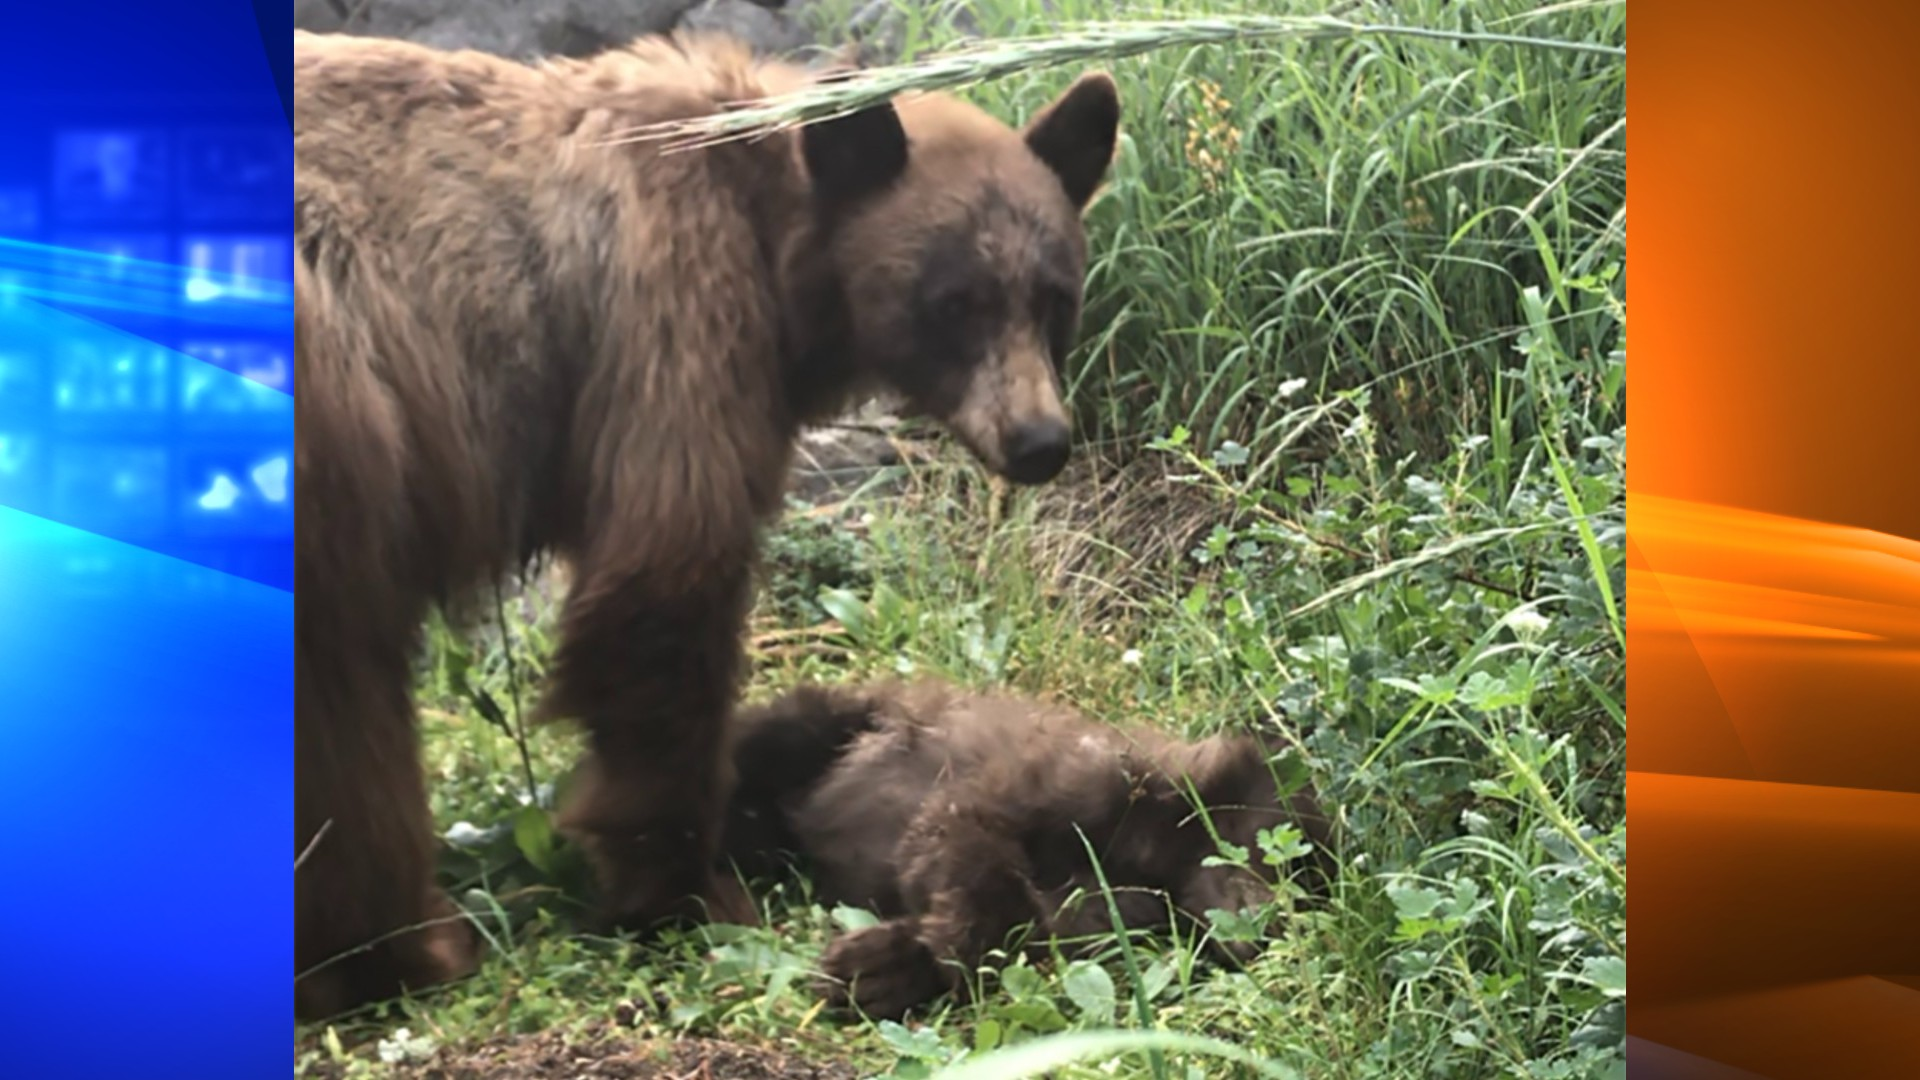 This photo of the dead bear cub and her mother was released by Yosemite National Park on July 16, 2021.